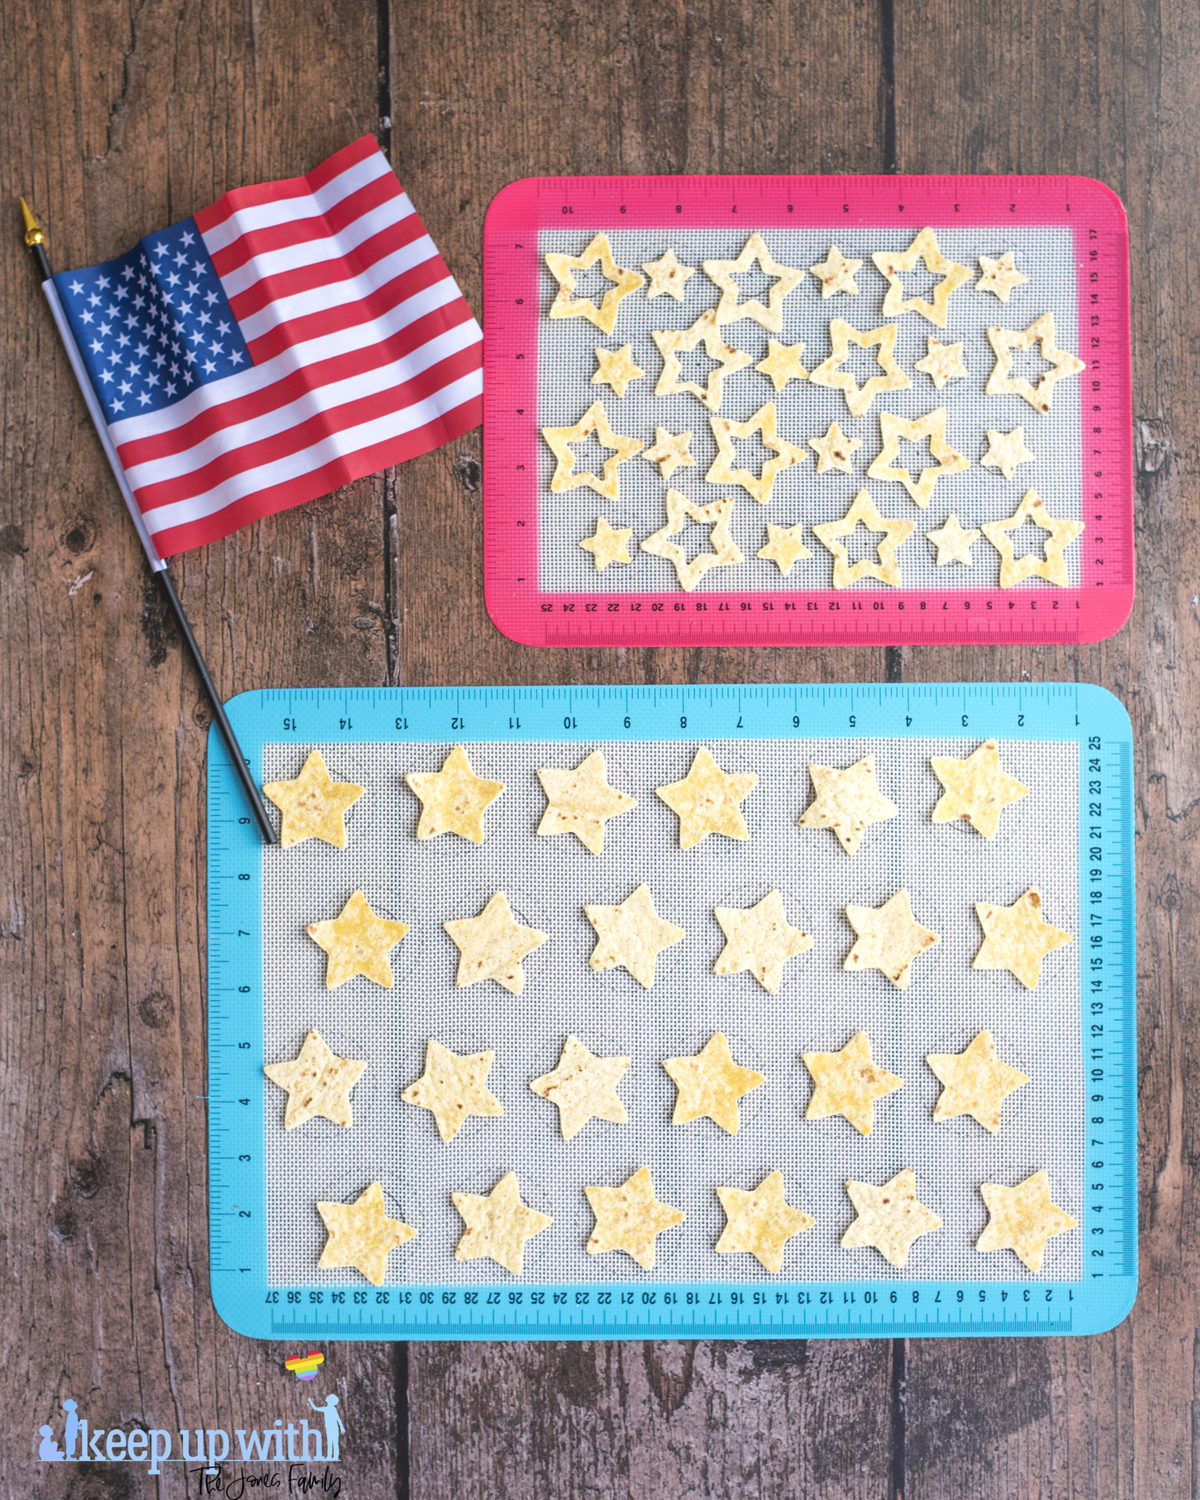 Image shows two silicone baking sheets on a dark wooden table. One is red and one is blue. On top of them are cut out star chips 'n' dip nachos from tortillas. The American flag is laid next to the baking sheets. Image by keep up with the jones family.